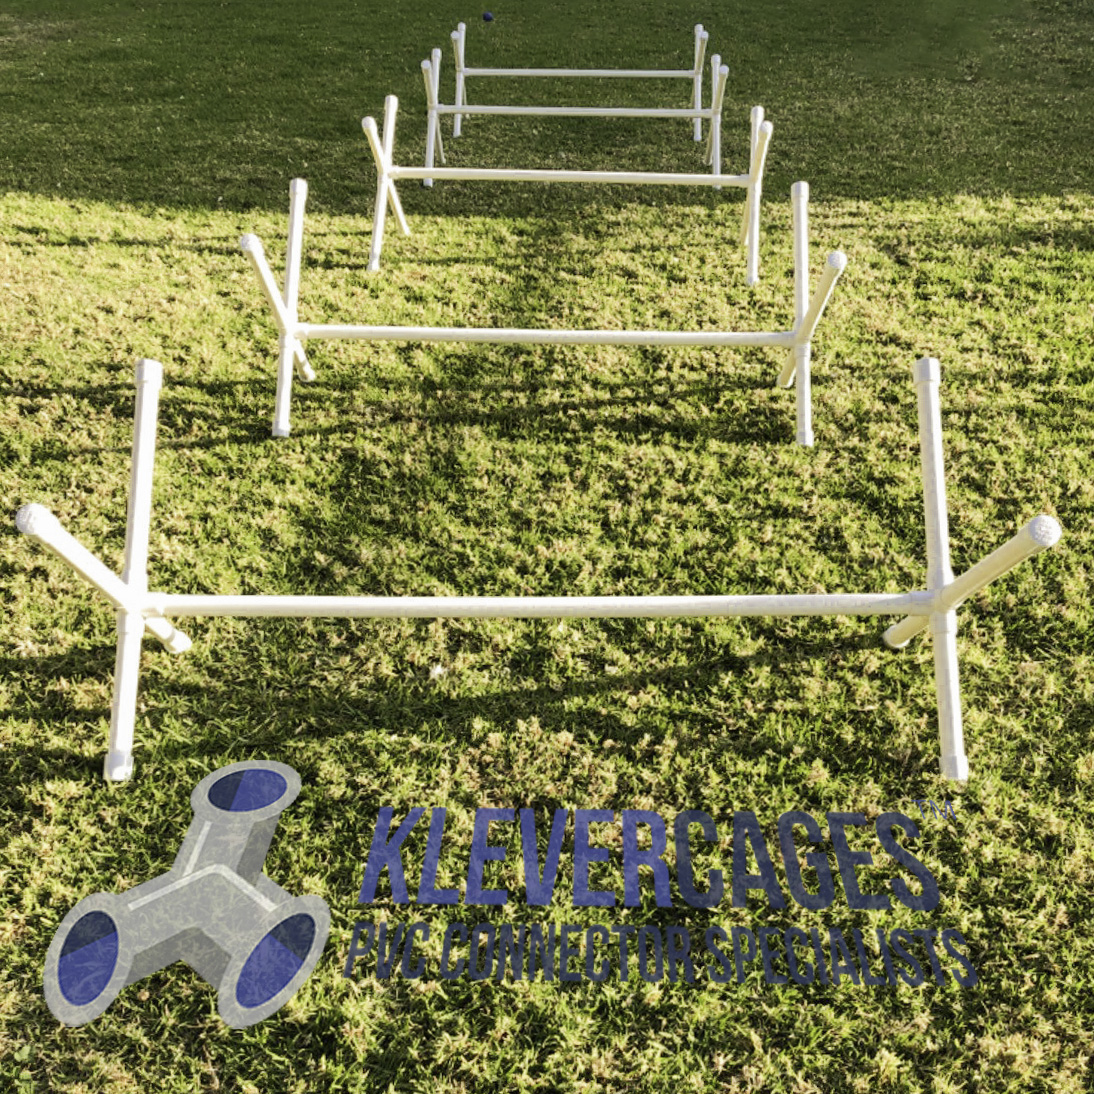 5 Dog agility flip adjustable cavalettis dog hurdles for strength and confidence training. These are made from 20mm PVC pipe, 5 way connectors and caps from Klever Cages